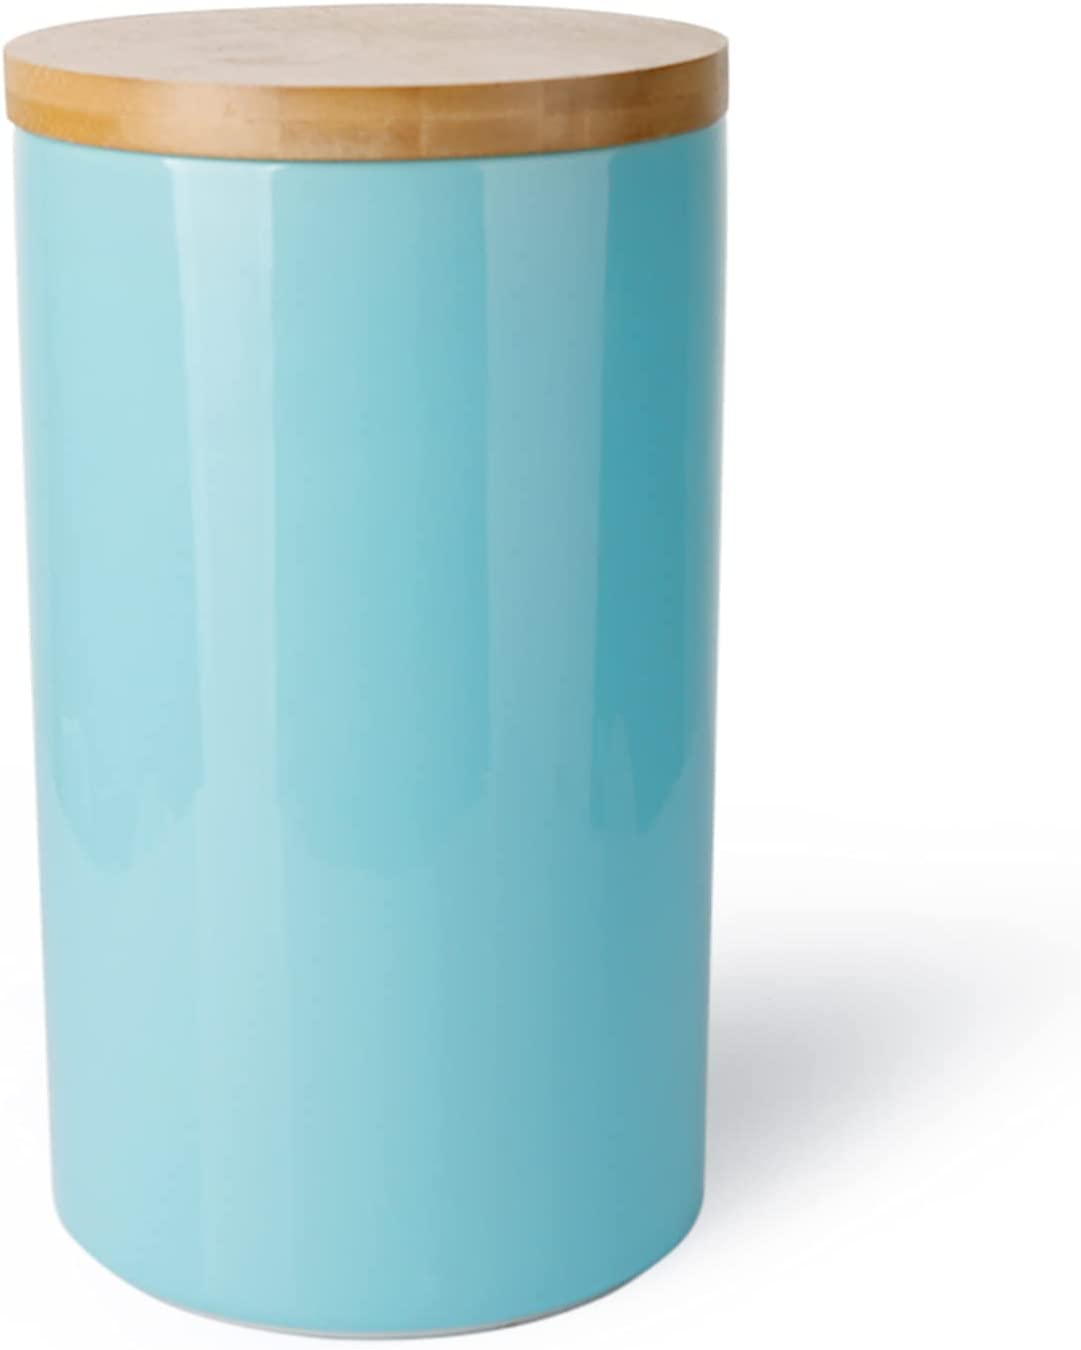 Sweese 817.102 Kitchen Canisters, 65oz/1930ml Porcelain Food Storage Jar with Wooden Lid for Serving Coffee Bean, Flour, Tea, Spice, Container Airtight, Turquoise